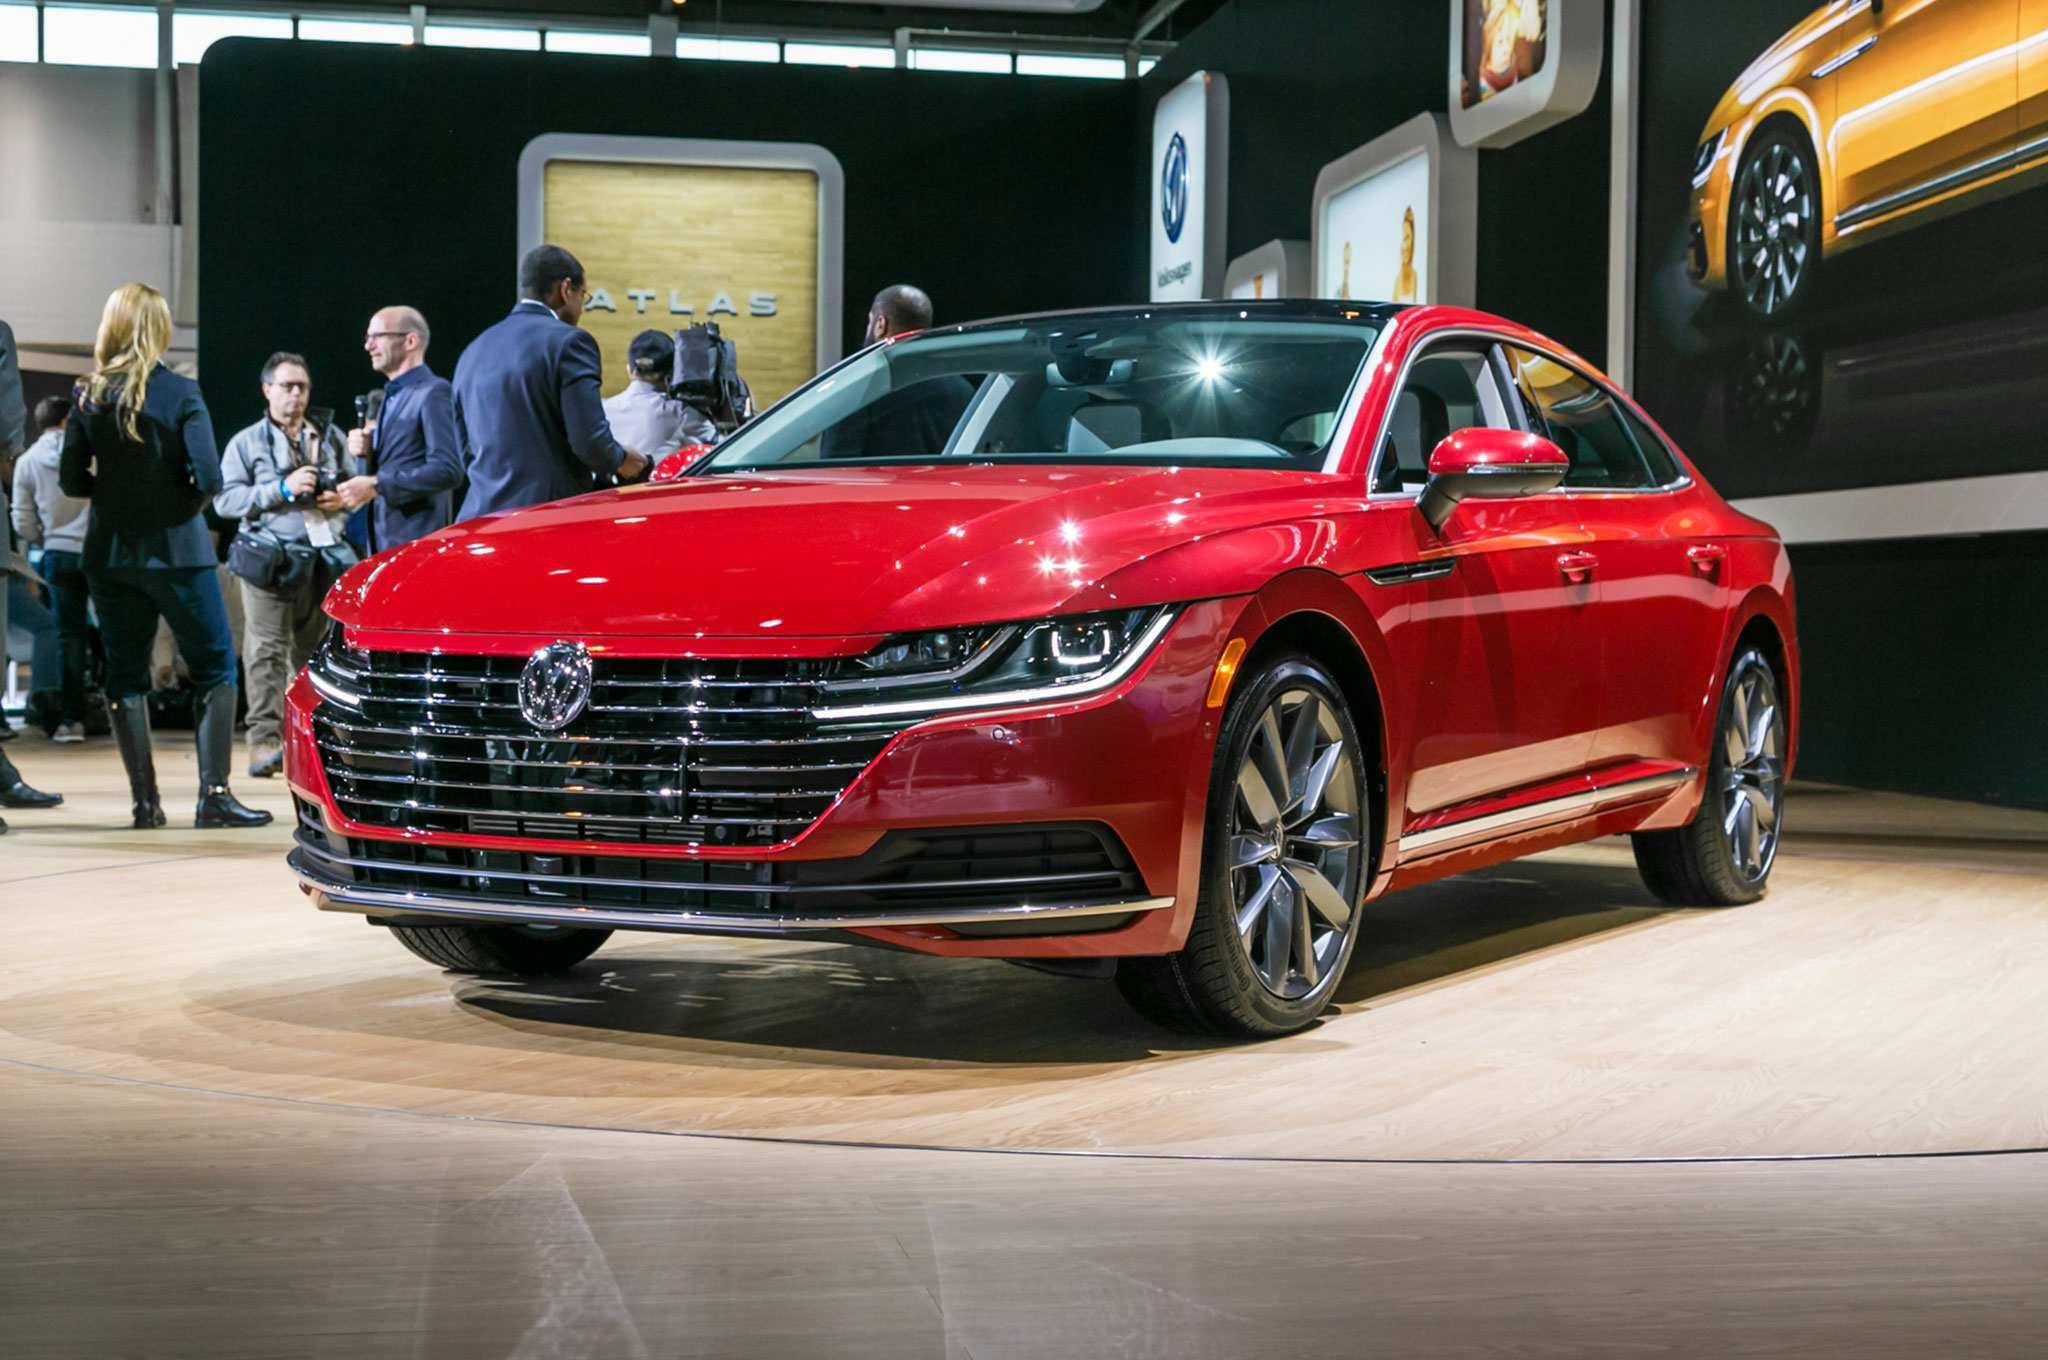 47 Best Review Arteon VW 2020 Prices by Arteon VW 2020